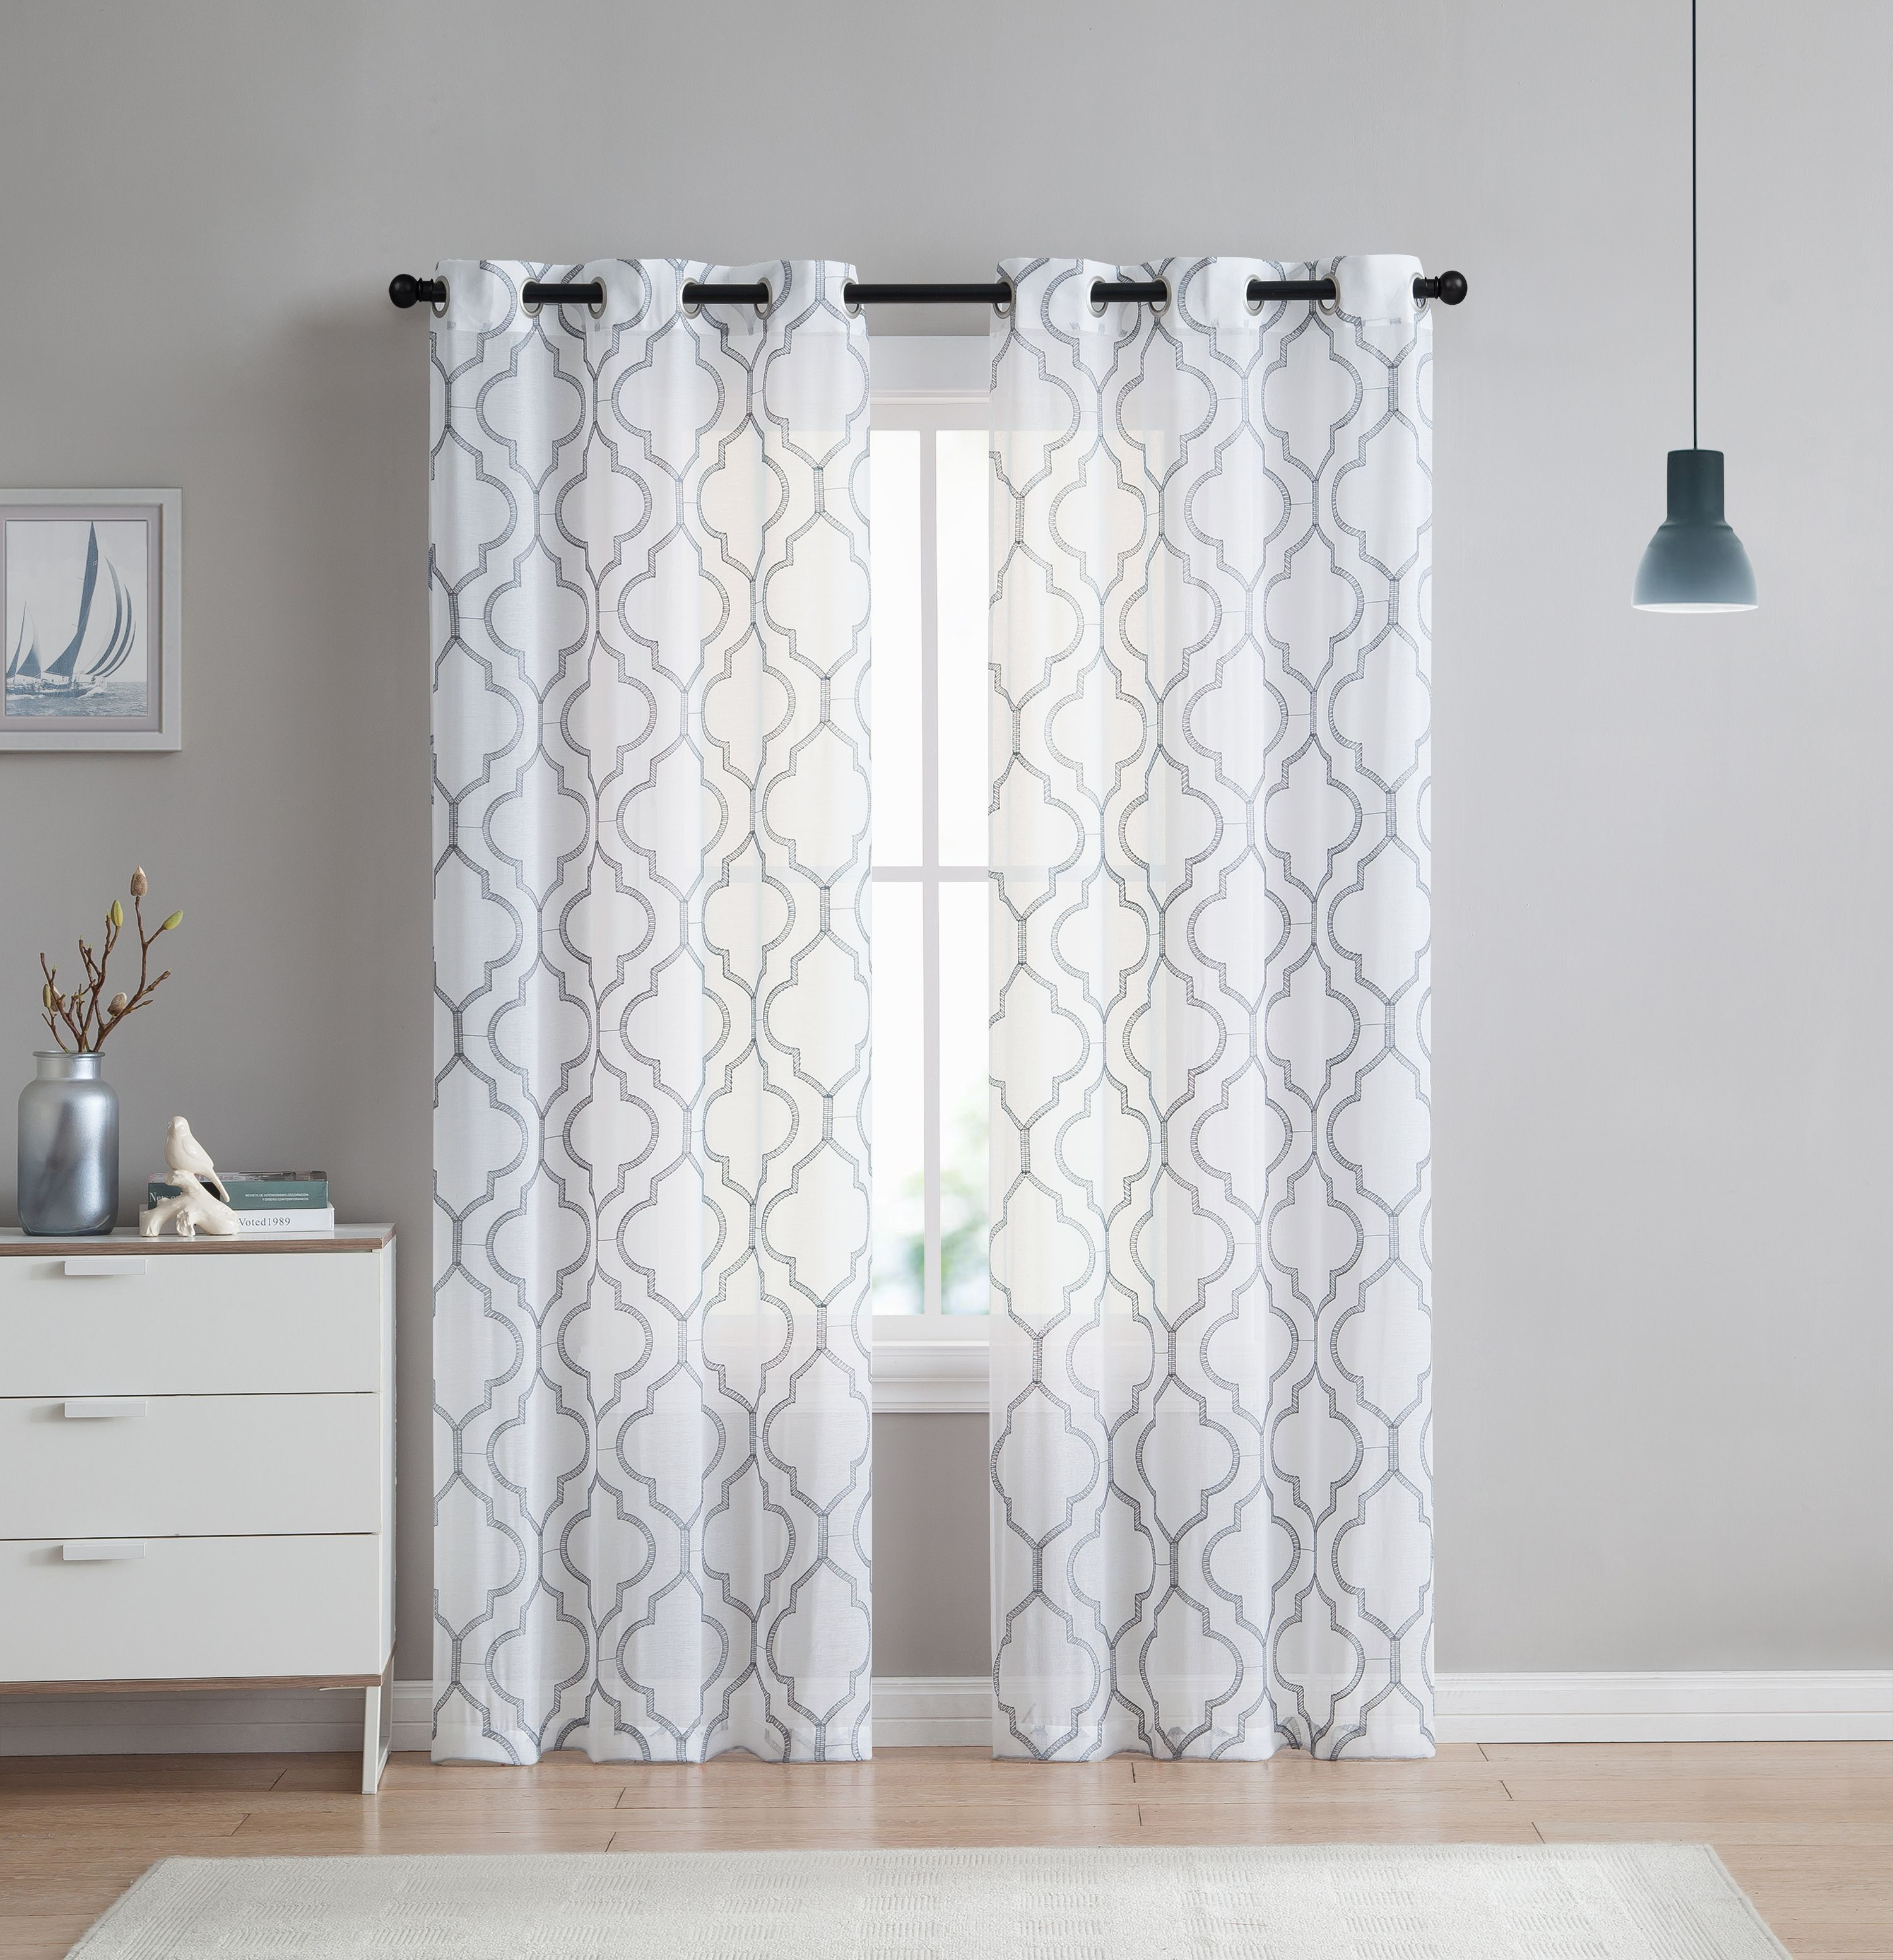 2 Pack: VCNY Home Charlotte Semi Sheer Trellis Grommet Top Curtain Panels -  (Grey, 84 in.)